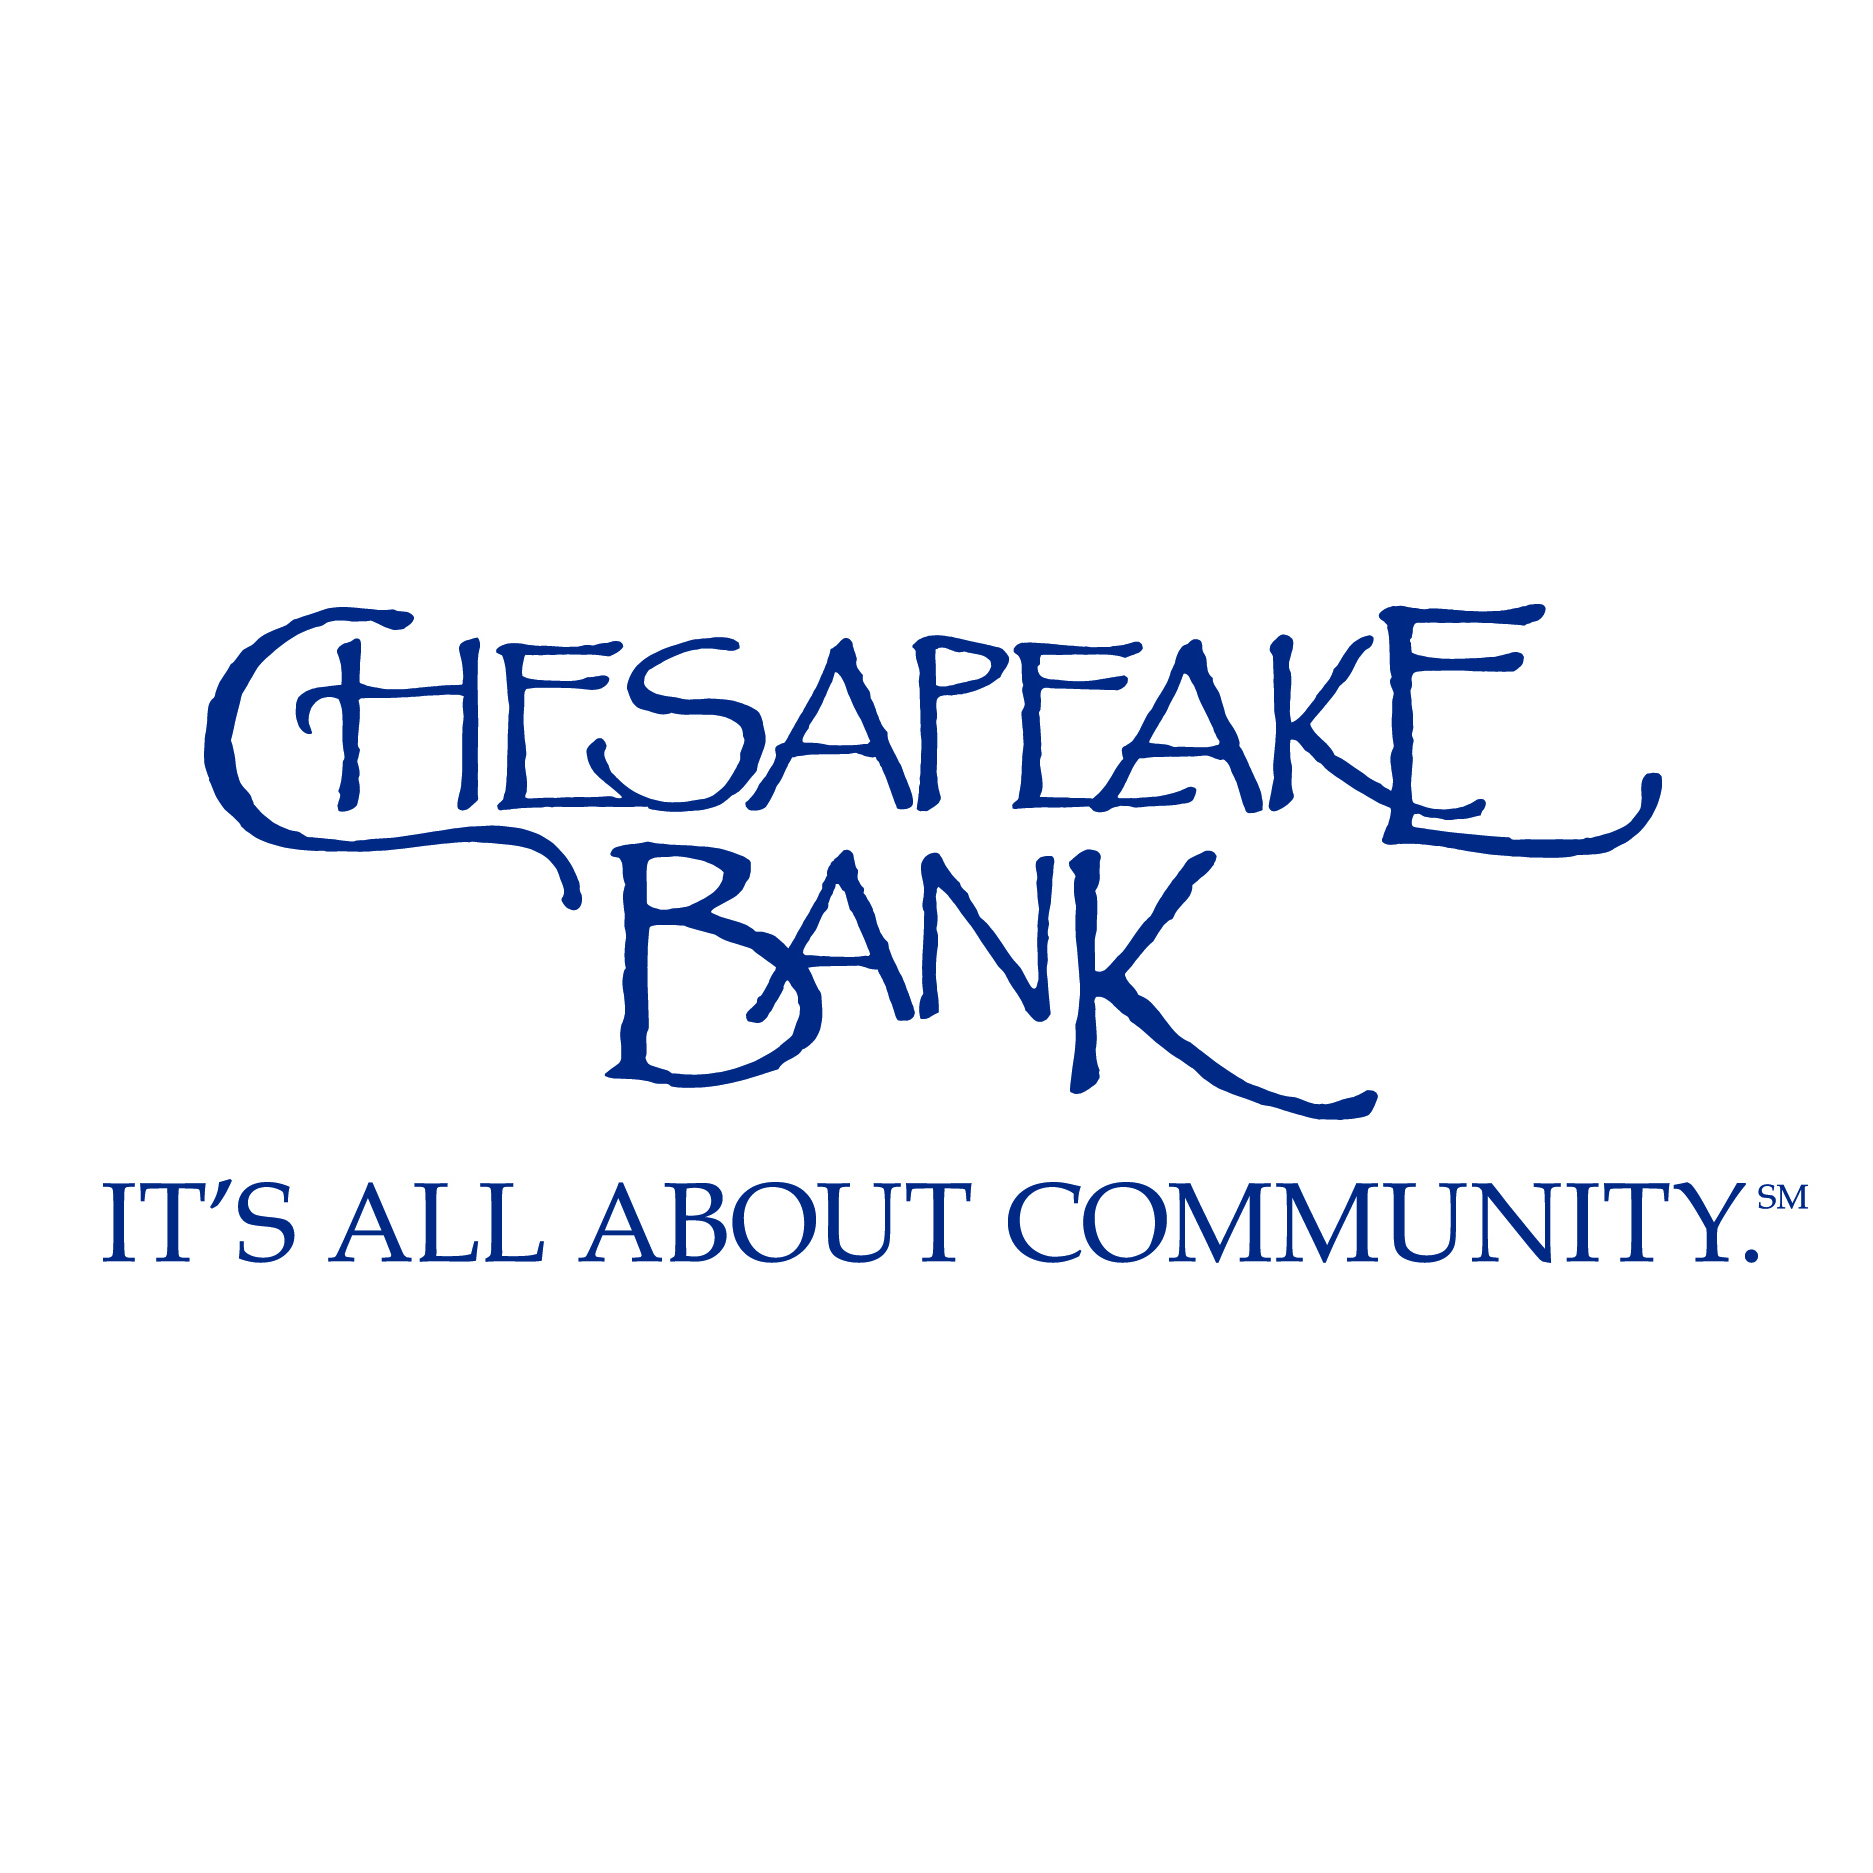 - 116 year old community bank with roots in the Northern Neck of Virginia. Spreading the good word of responsible community based banking.Chesapeake Bank is a Richmond Sponsor of this tour - thank you!